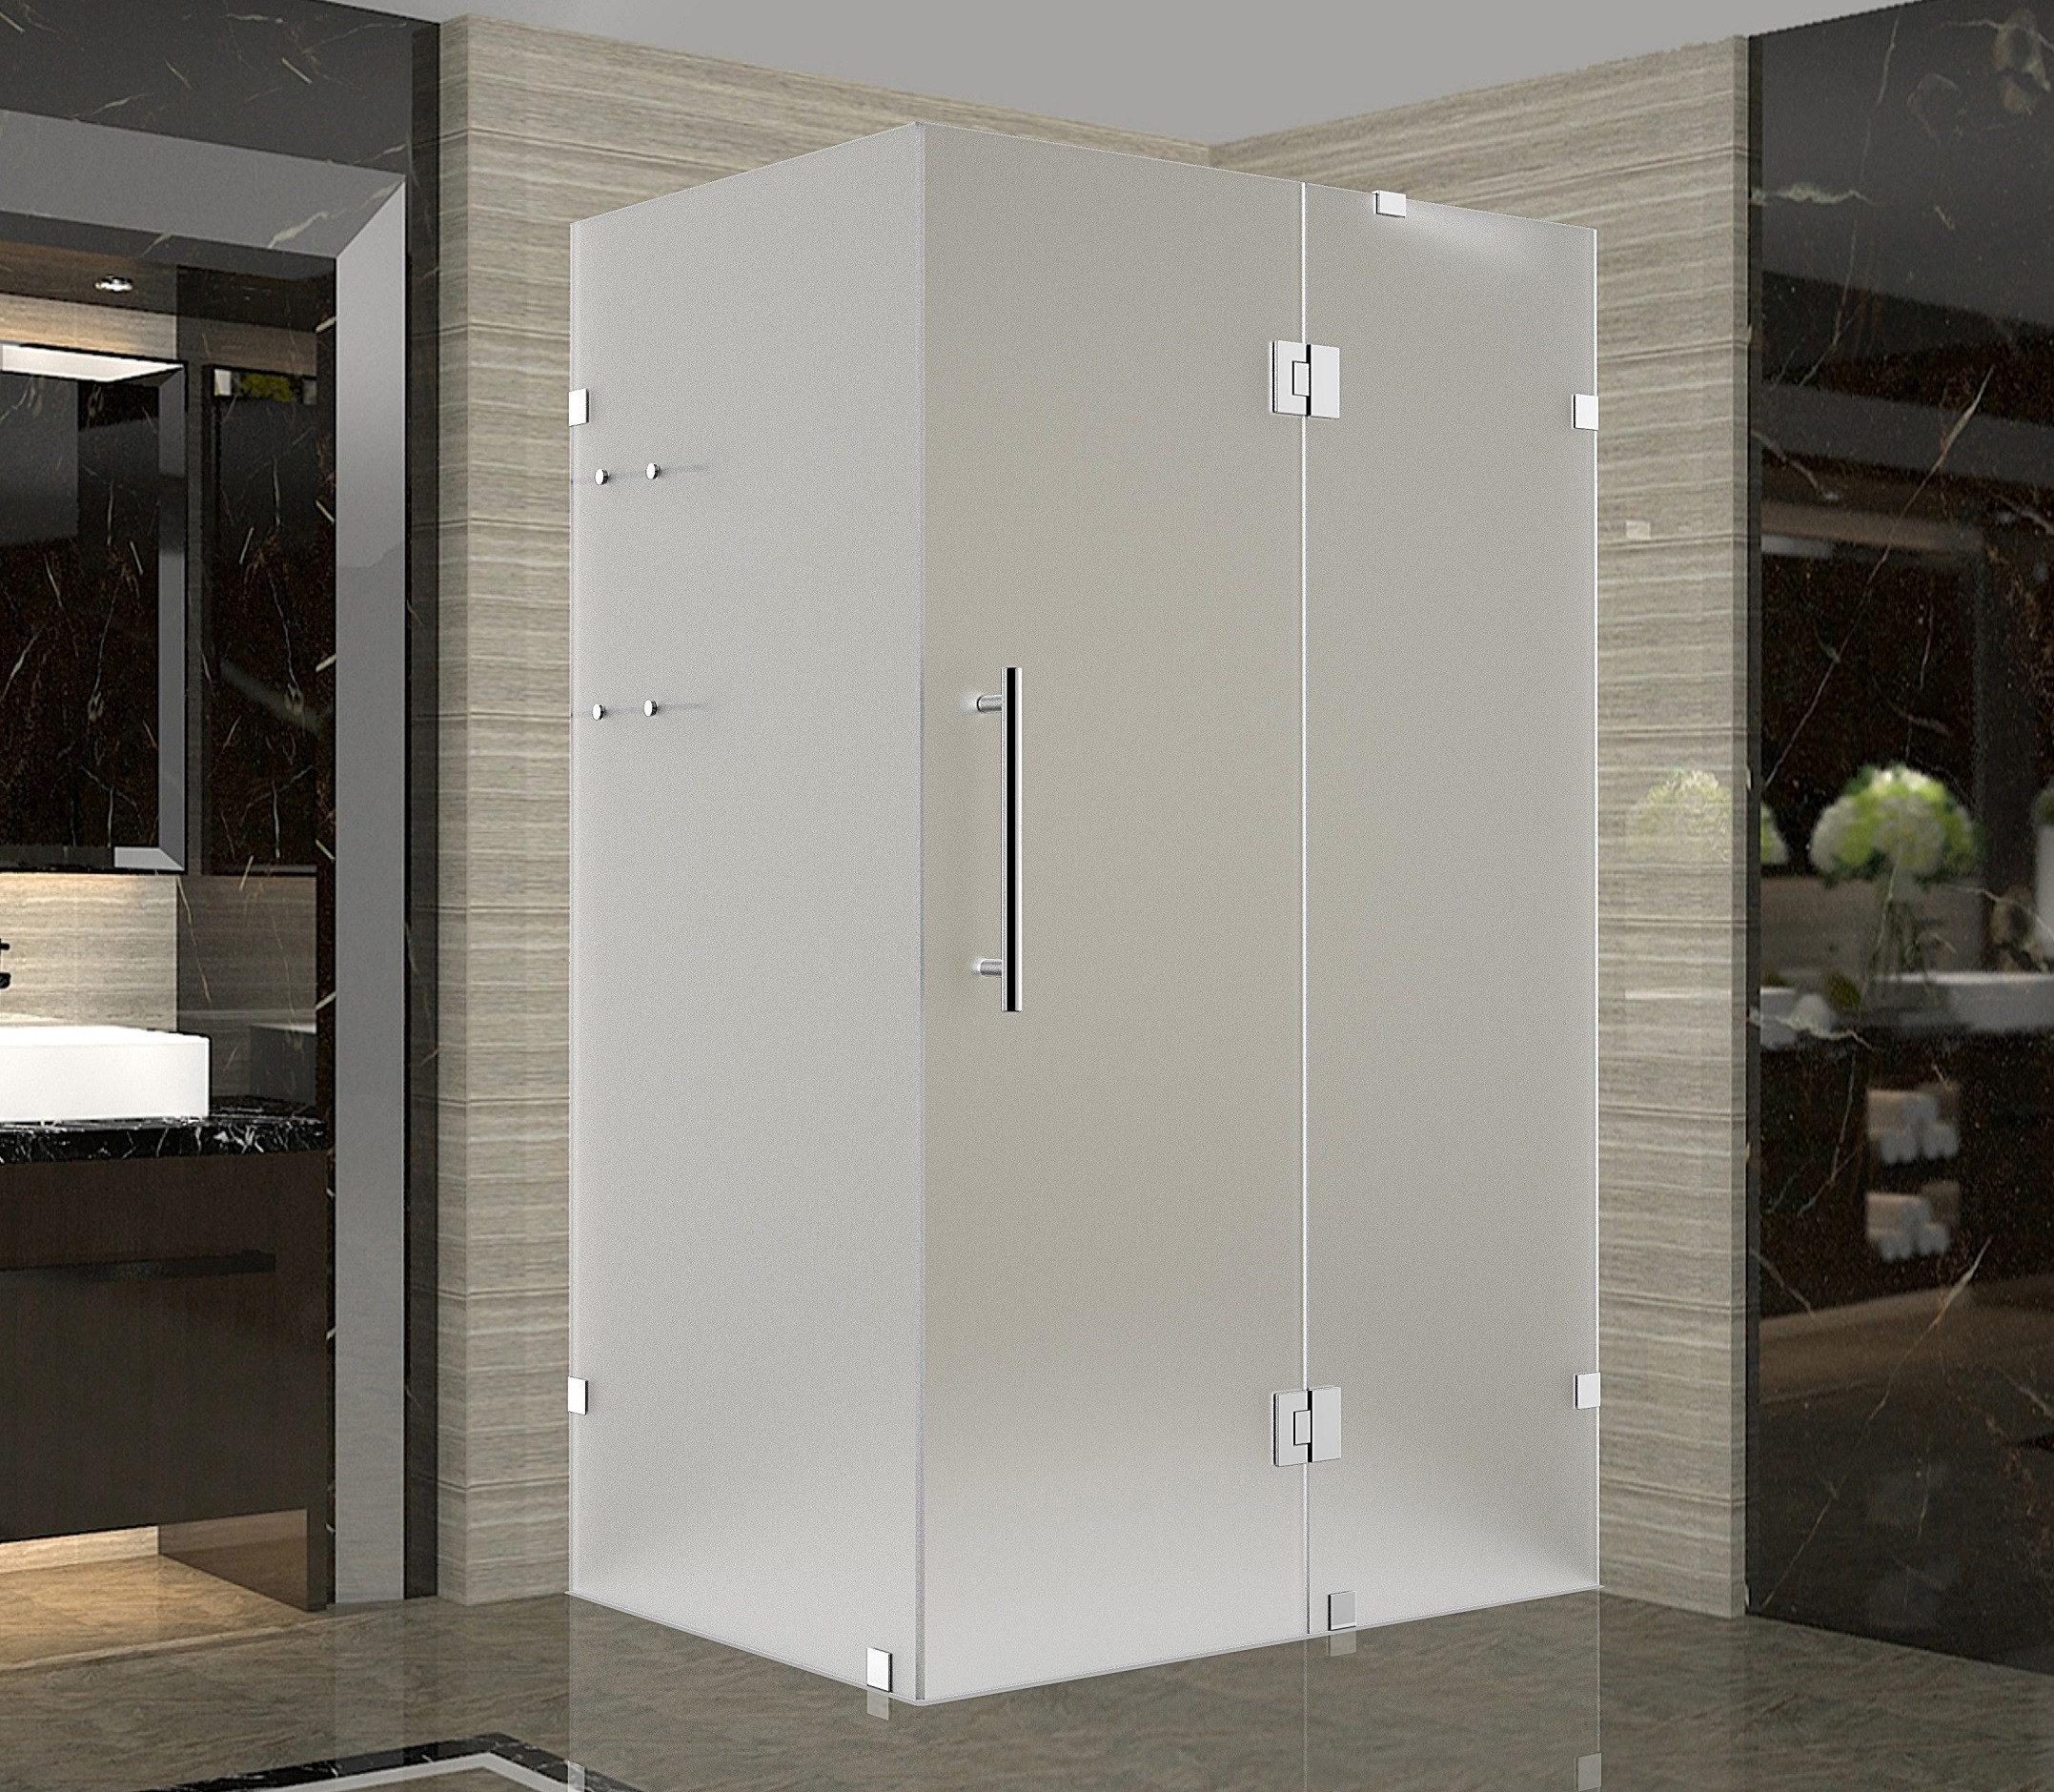 Aston Global SEN992F-CH-3236-10 Chrome Completely Frameless Frosted Shower Enclosure with Shelves